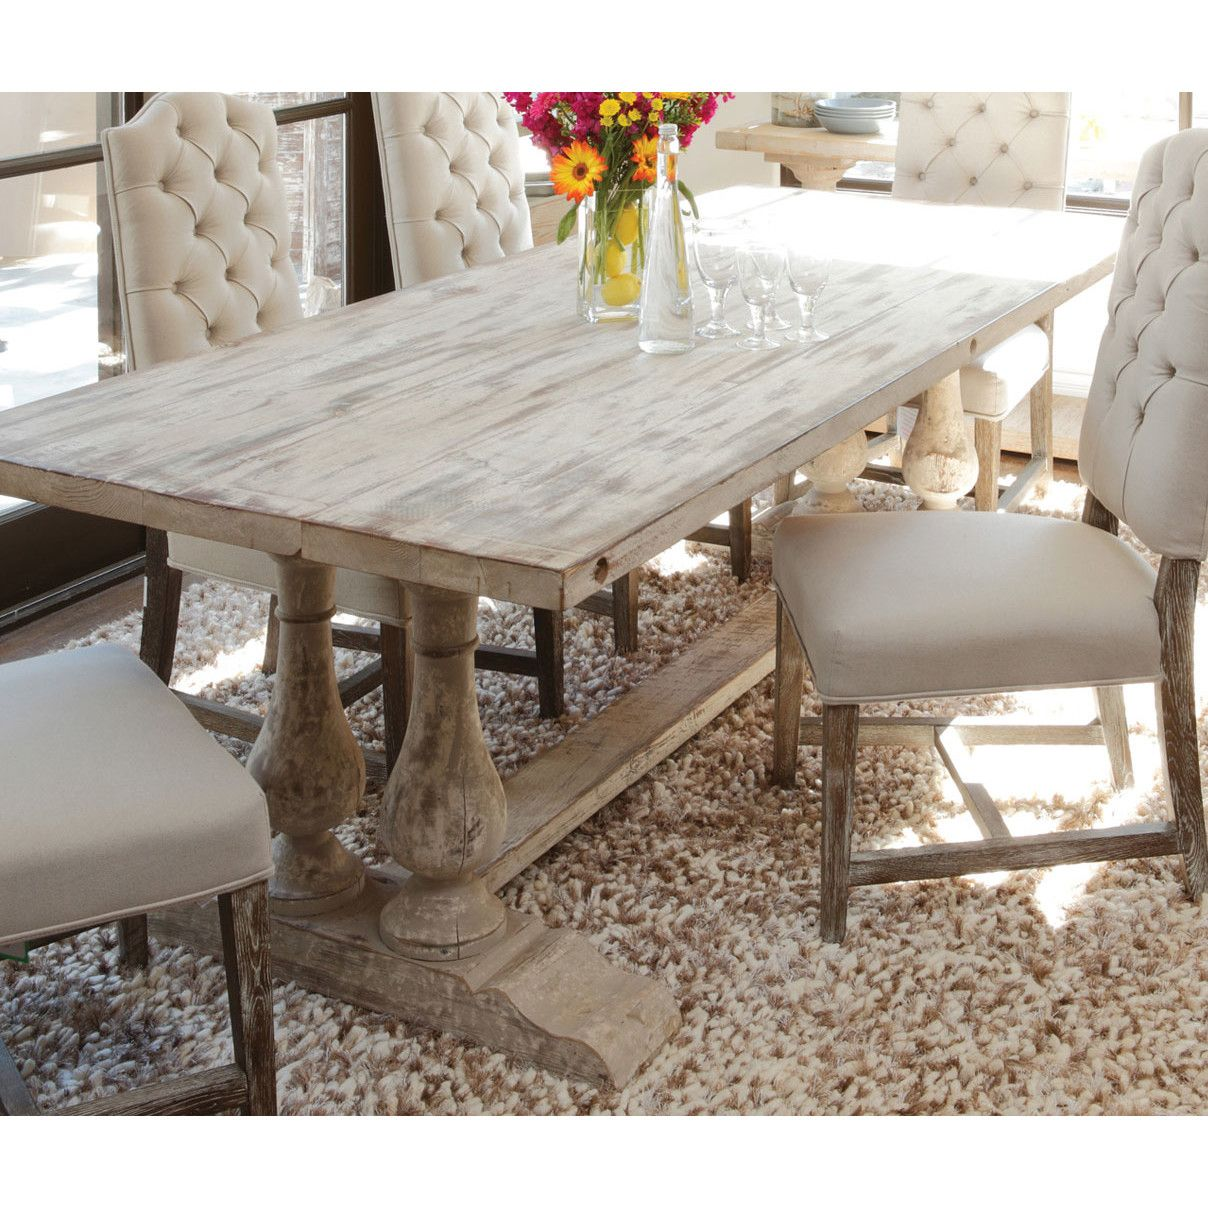 kosas home elodie dining table reviews wayfair ideas for the rh pinterest com wayfair.ca dining room tables wayfair glass dining room tables